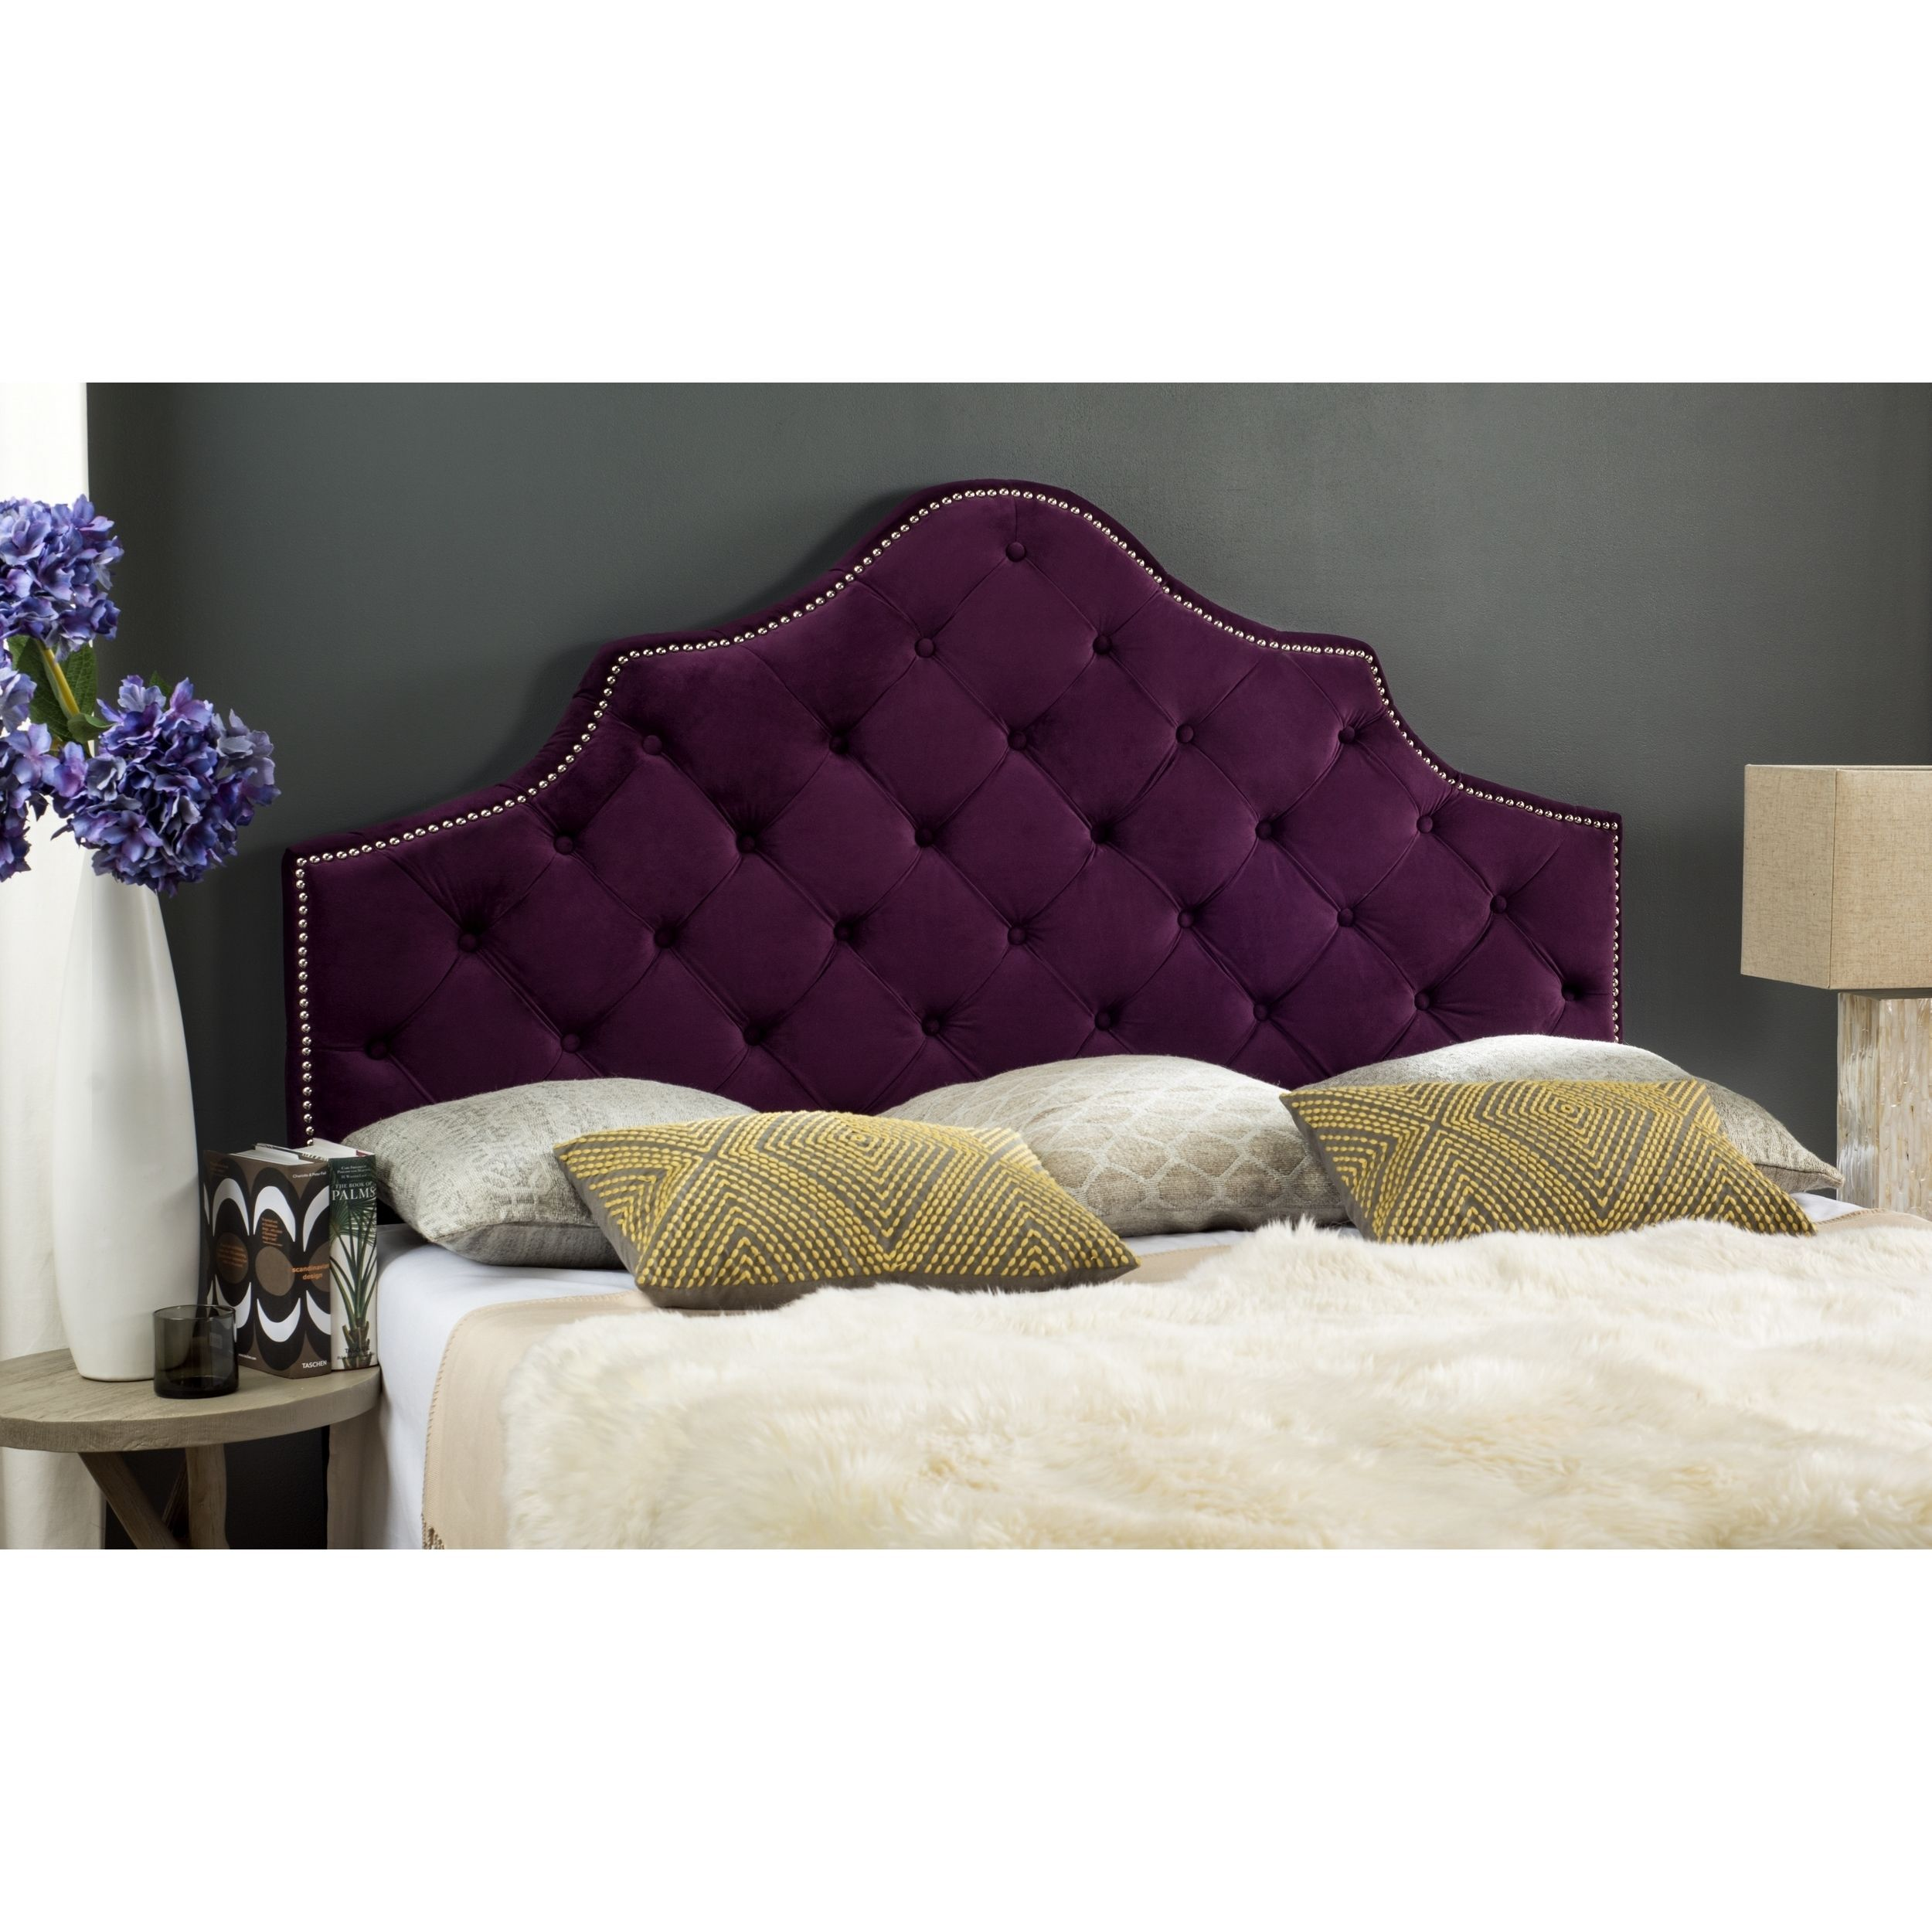 Design Purple Tufted Headboard 188 99 full furnishings that outfit the hotel suite thats a bet i could cover mine to look like this safavieh arebelle steel blue tufted headboard silver nail head queen